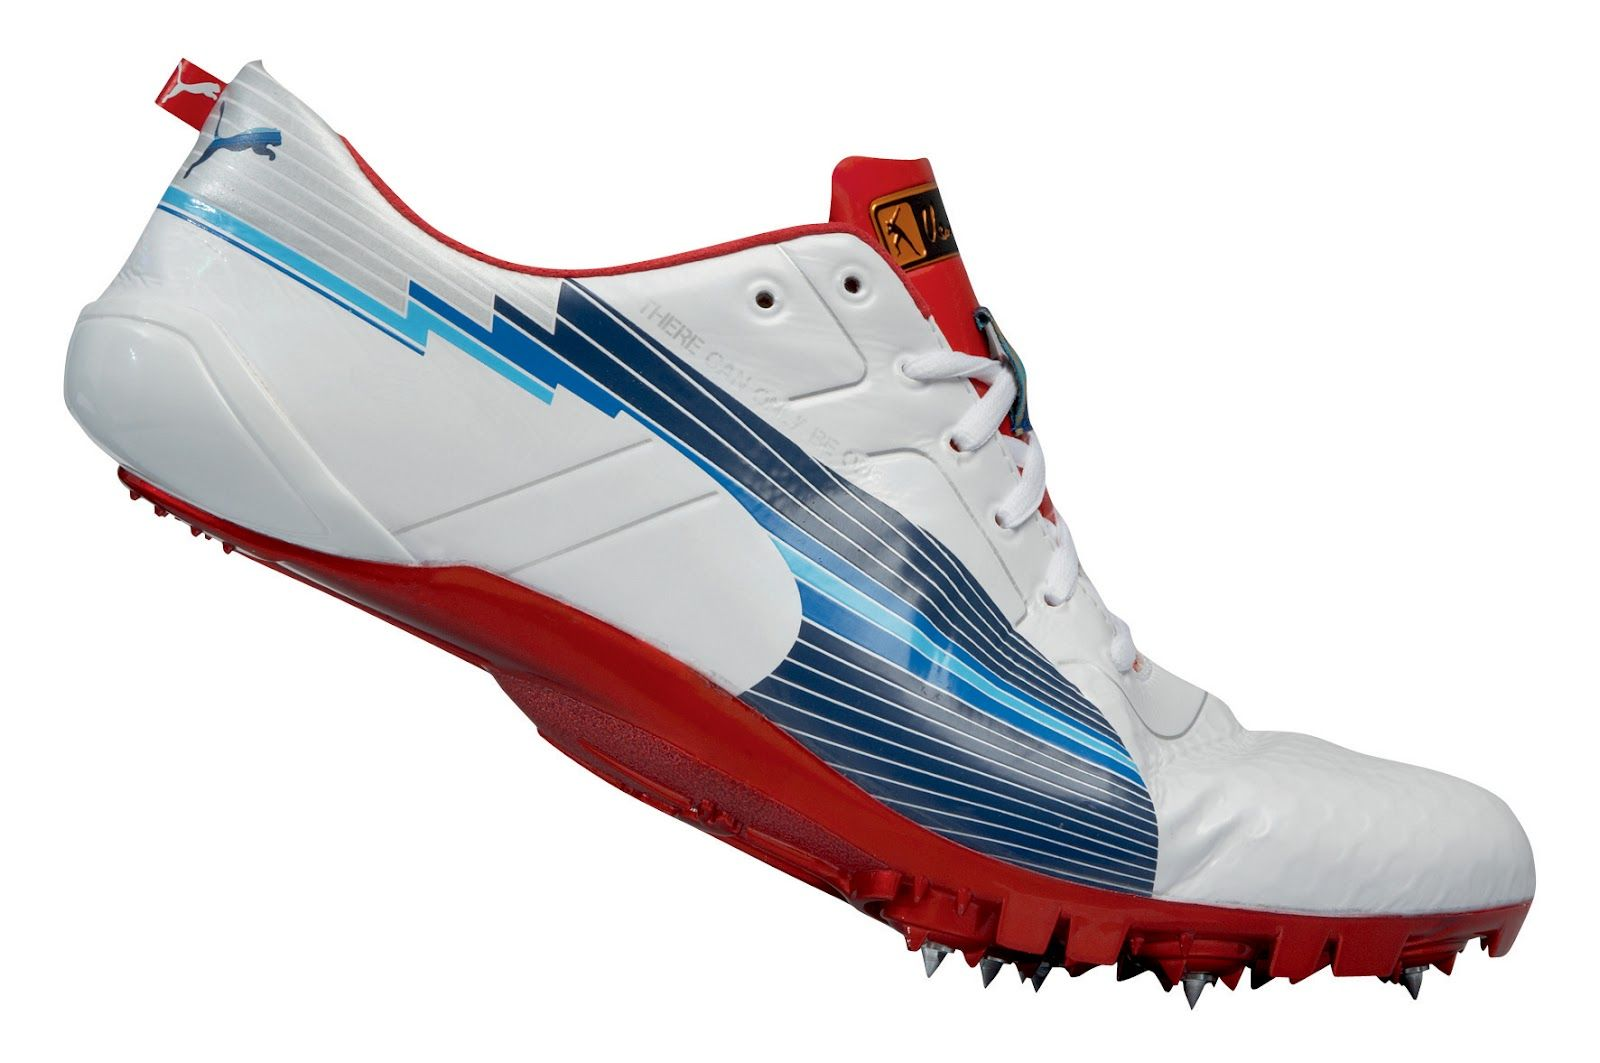 Puma evoSPEED LTD | For all the latest Sprint spikes news and reviews, from  the